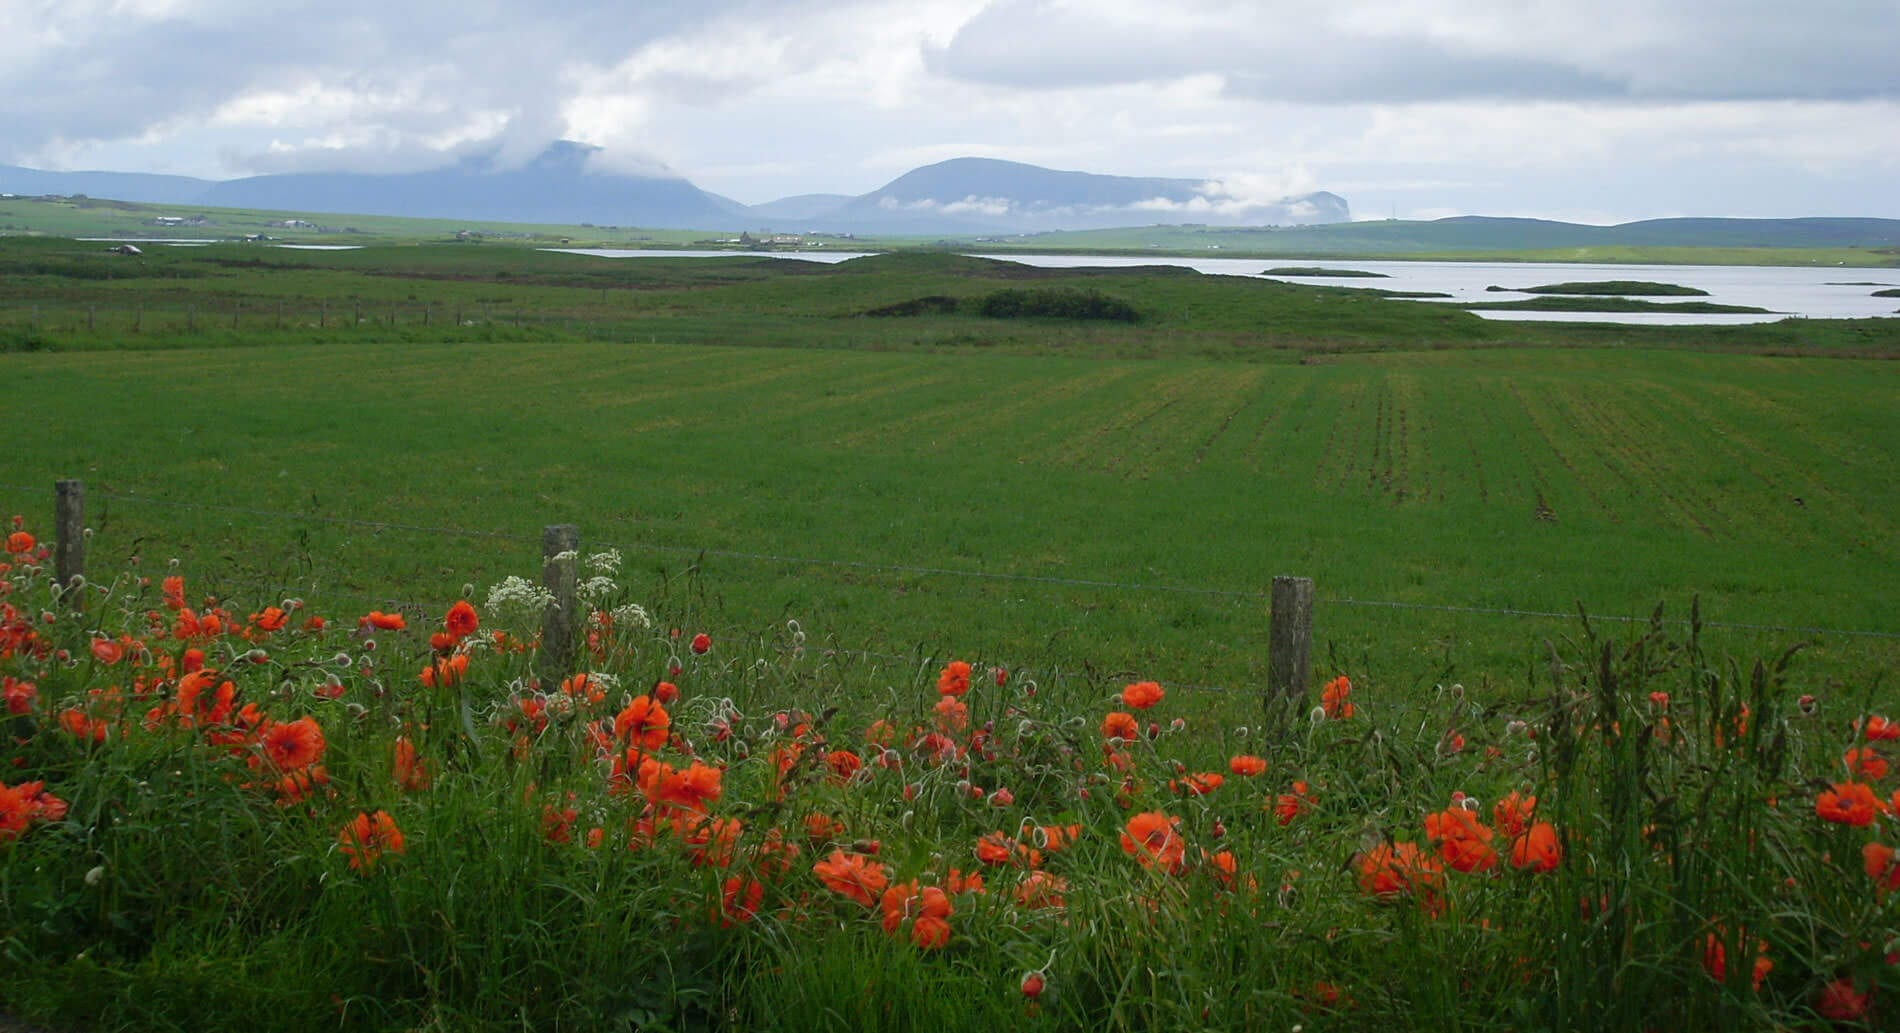 Loch of Stenness Poppies : Orcadian hospitality